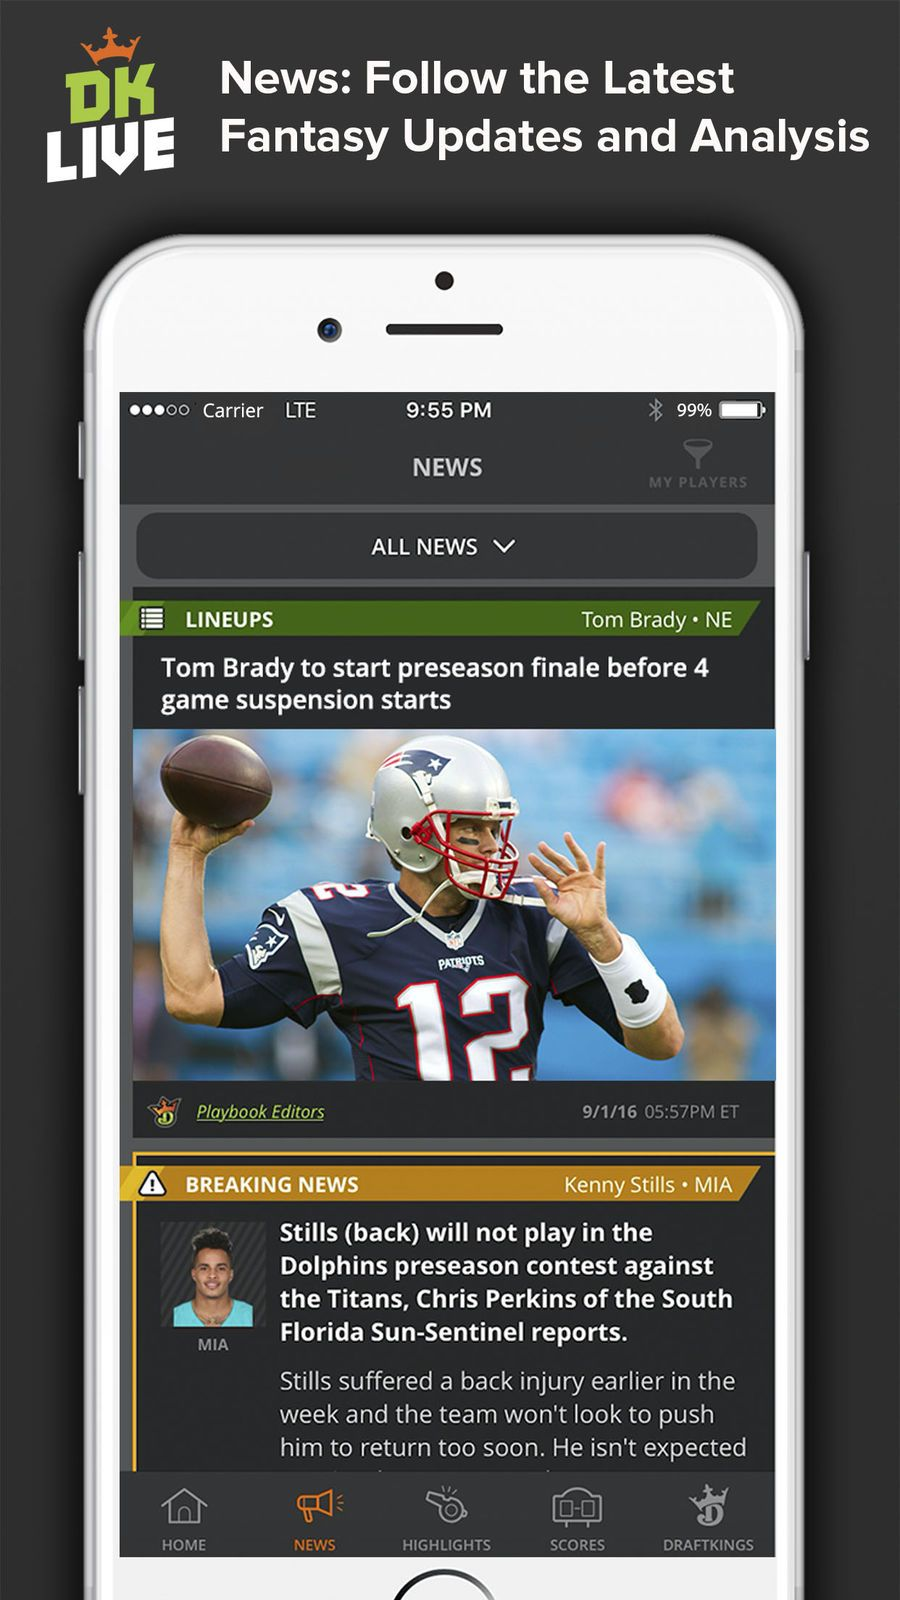 DK Live iosEntertainmentappapps Sports news, All